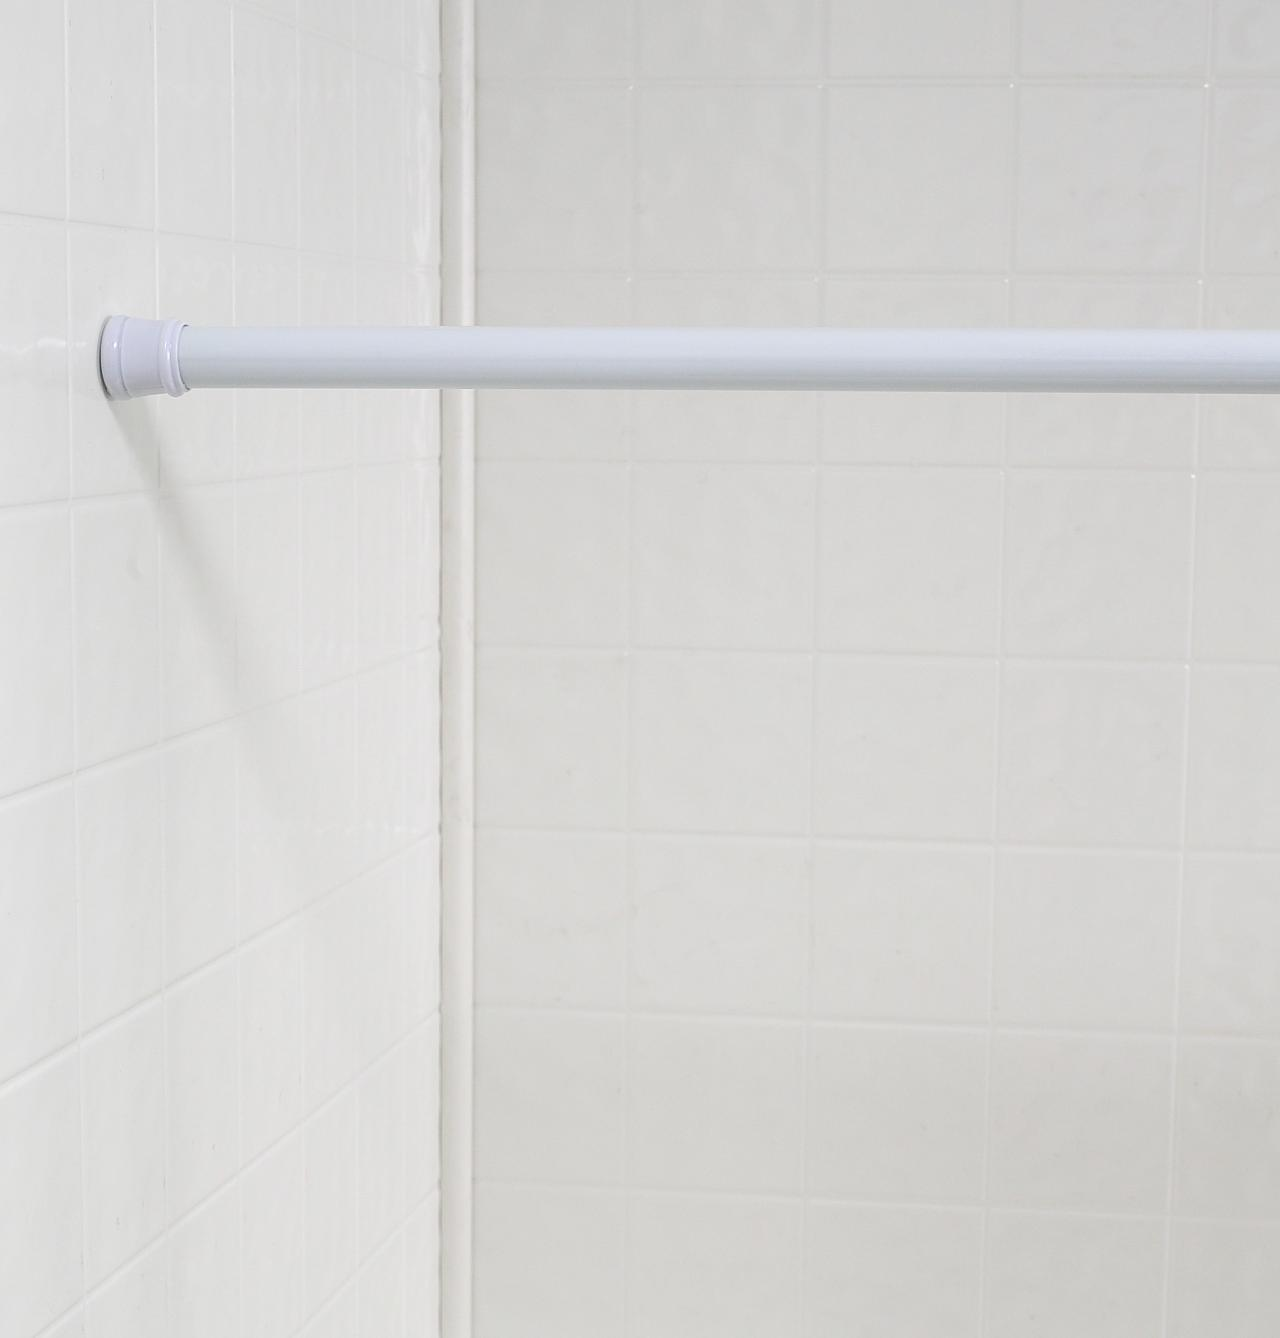 Tension shower curtain rods -  Shower Curtain Tension Rod Standard Size White